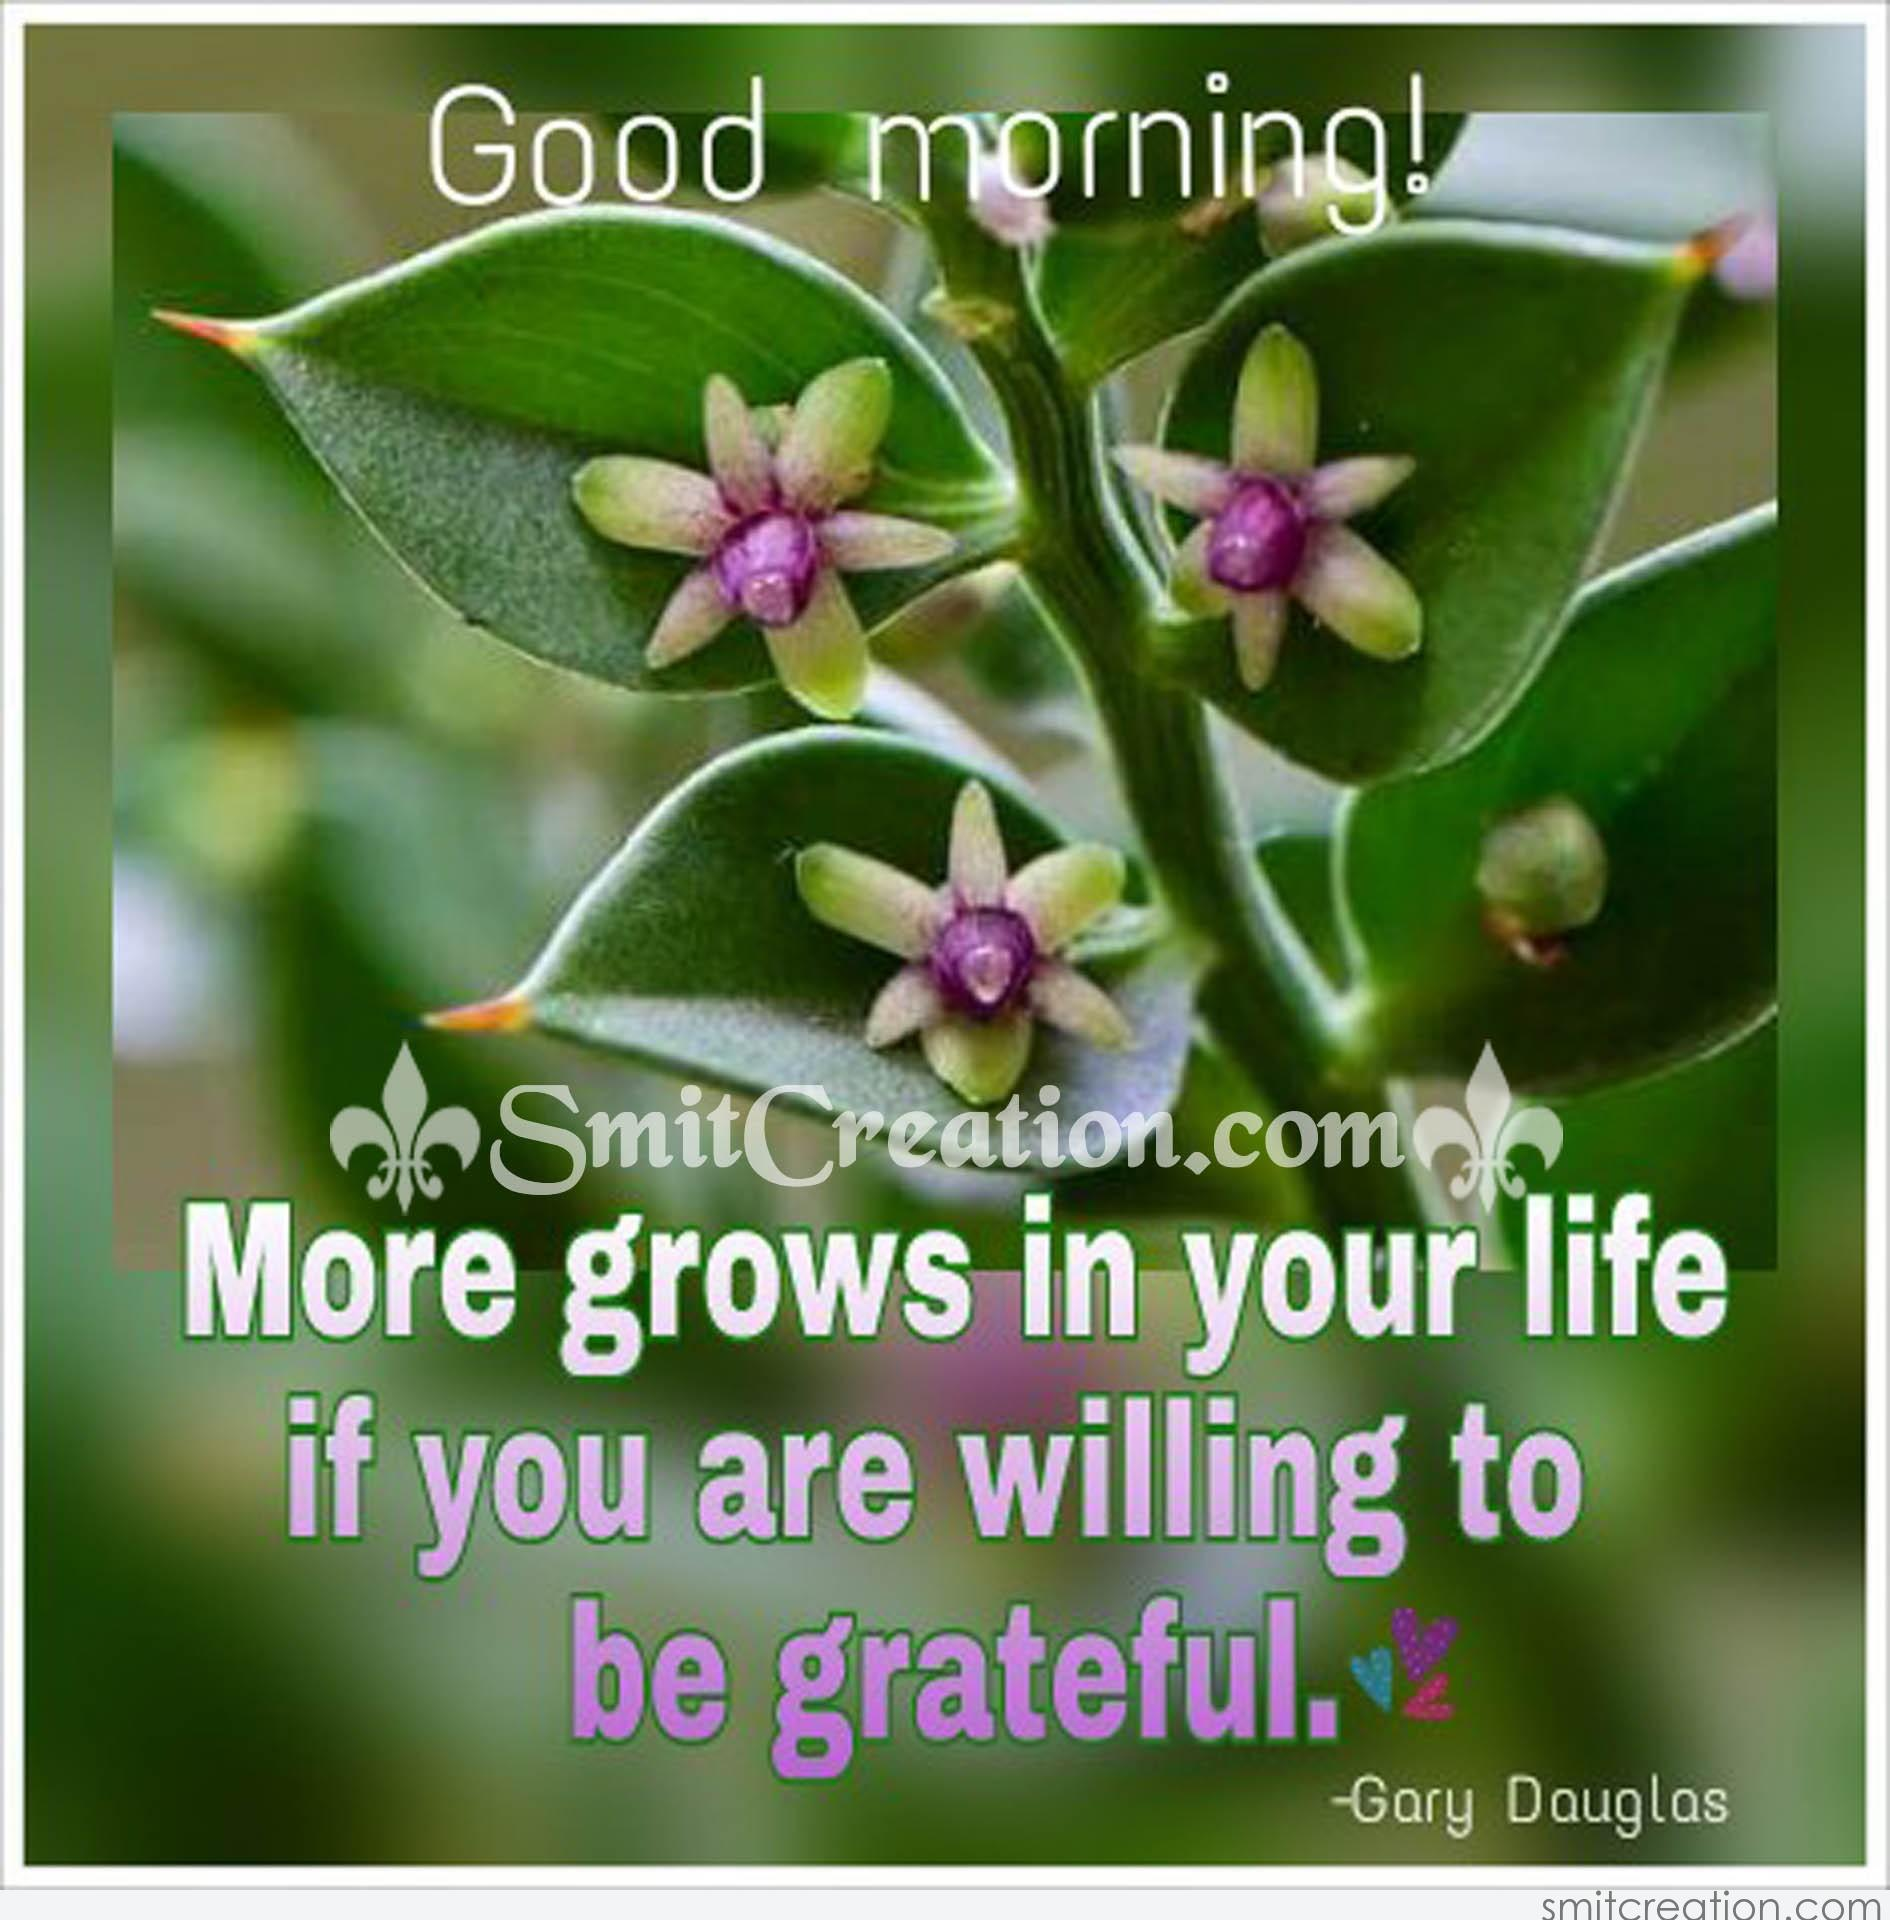 Good Morning More Grows In Your Life Smitcreationcom